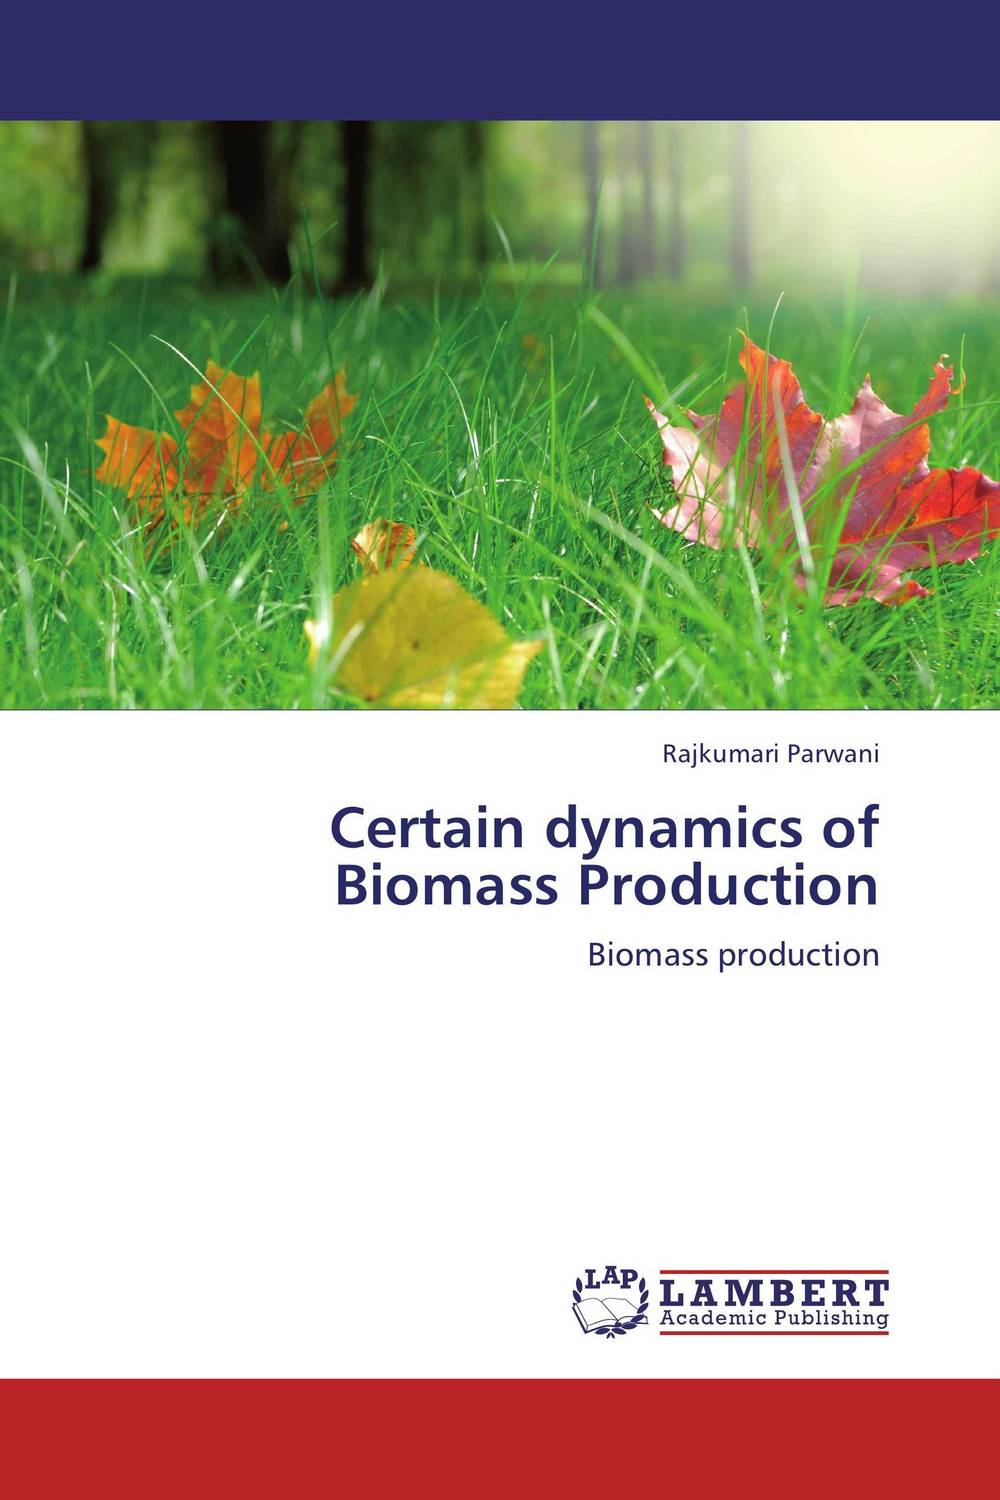 Certain dynamics of Biomass Production seed dormancy and germination